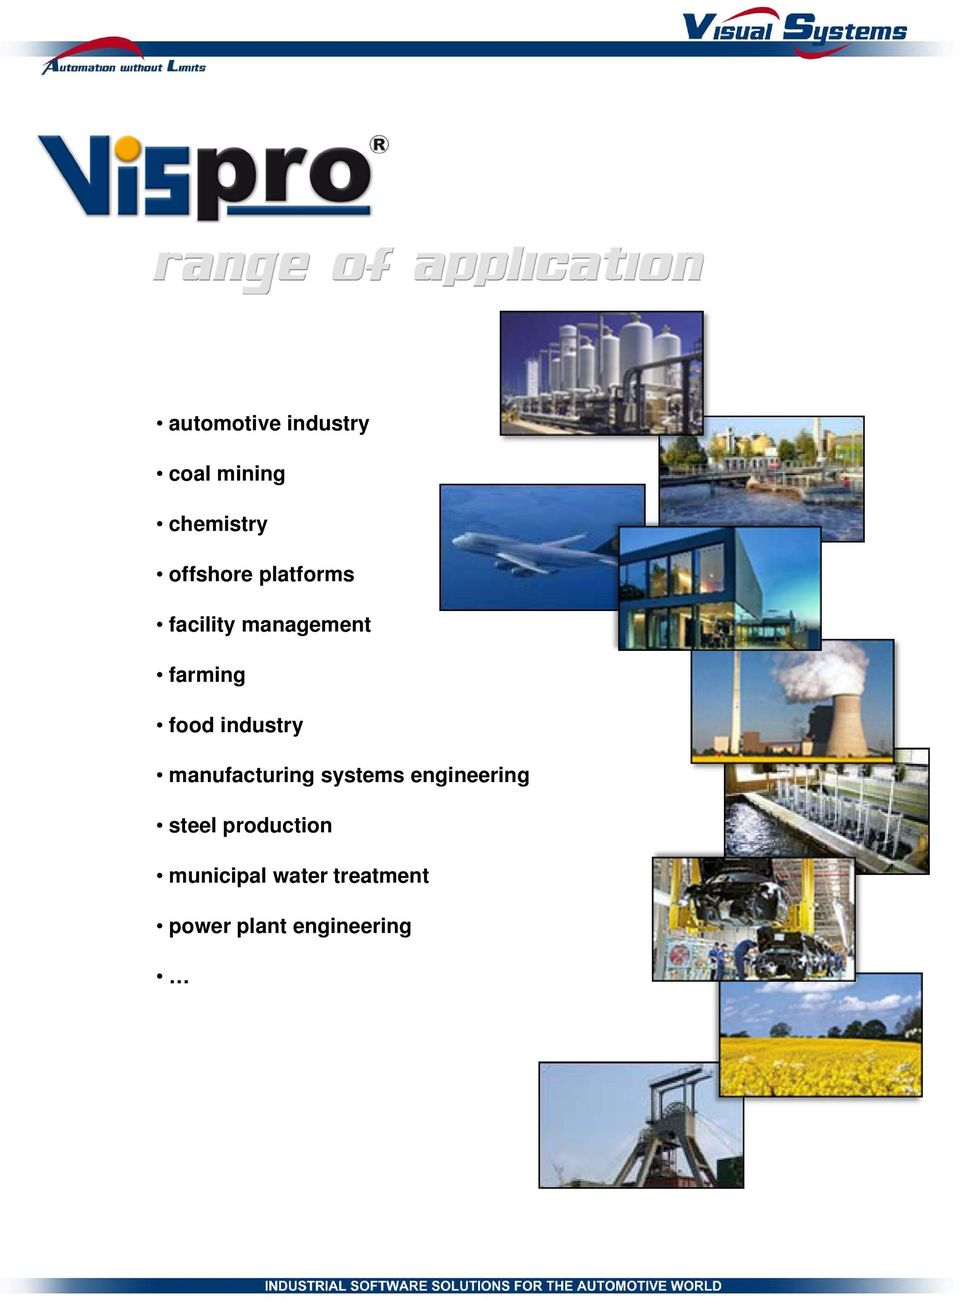 industry manufacturing systems engineering steel